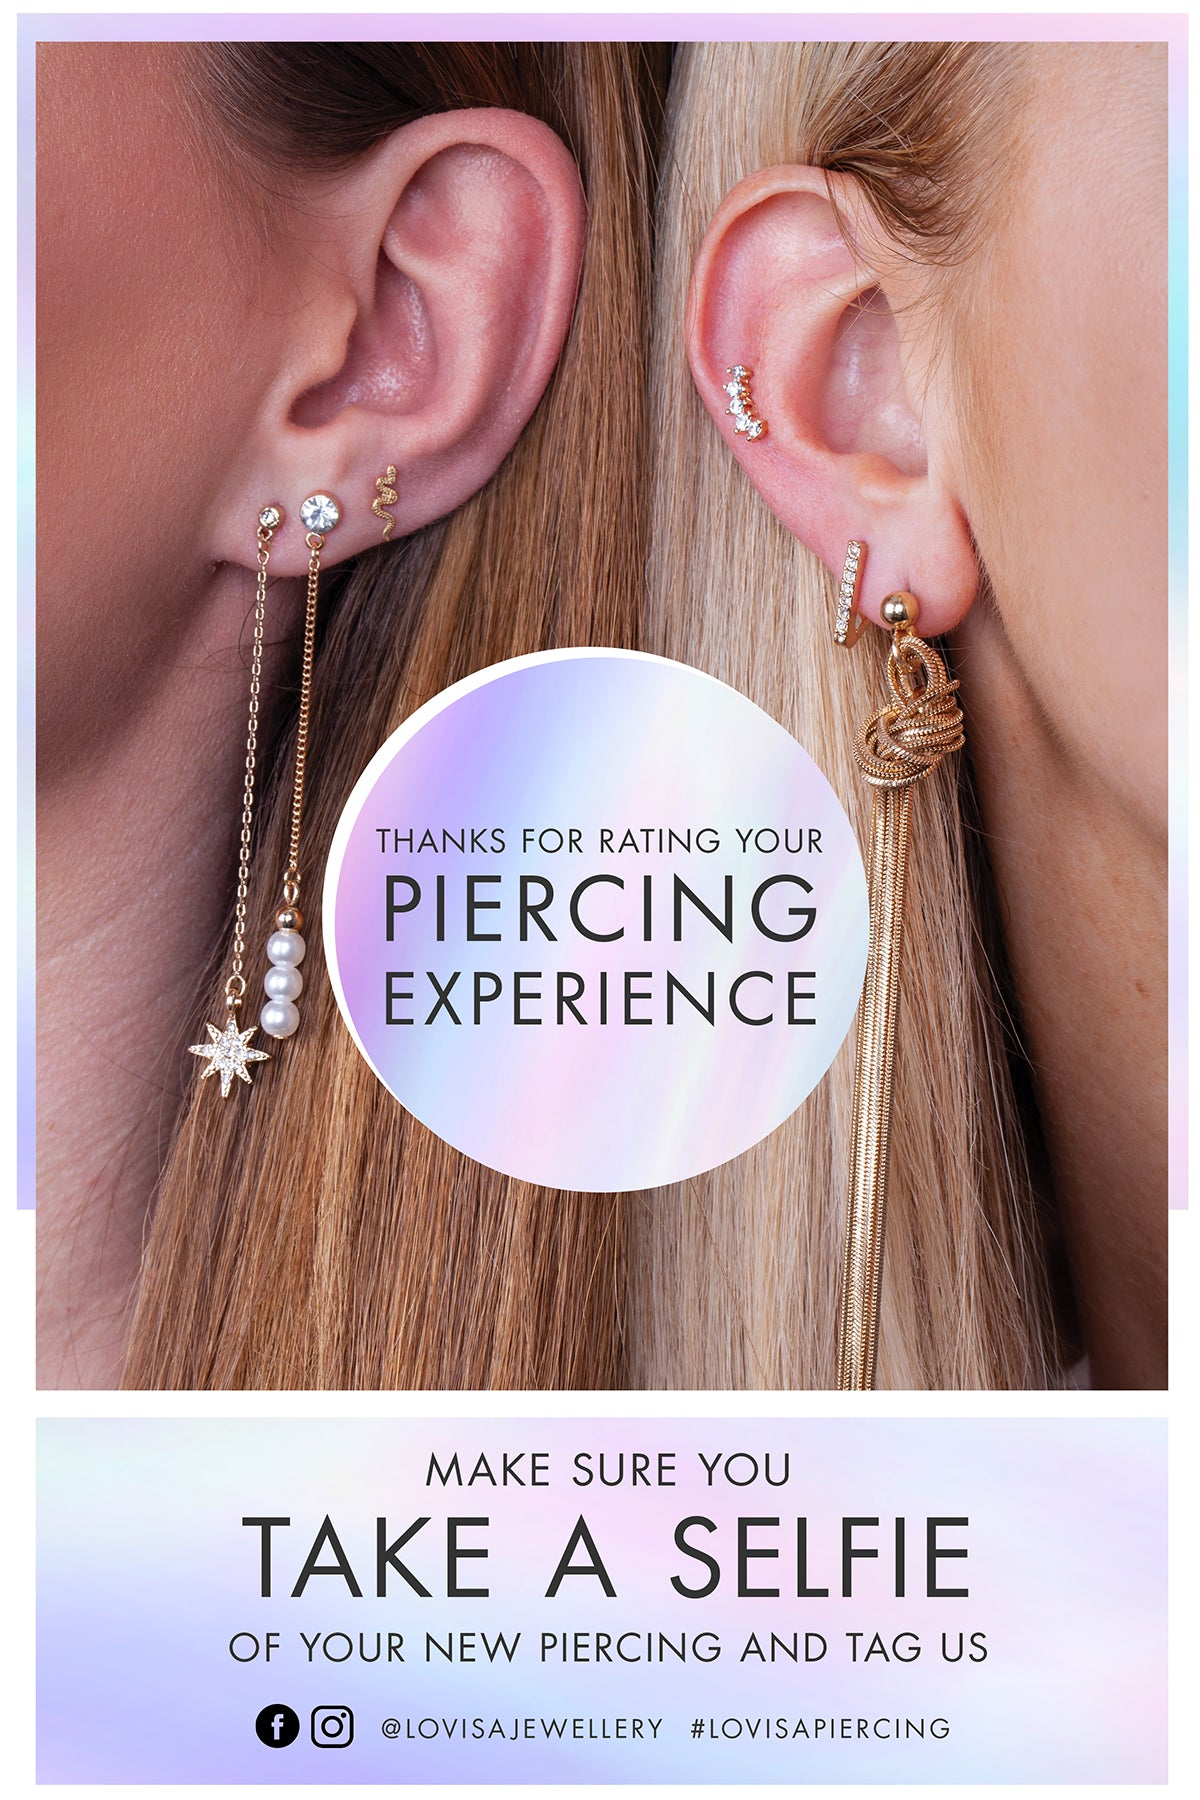 Thanks for Rating Your Piercing Experience | Make sure you take a selfie of your new piercing and tag us. | @lovisajewellery #lovisapiercing